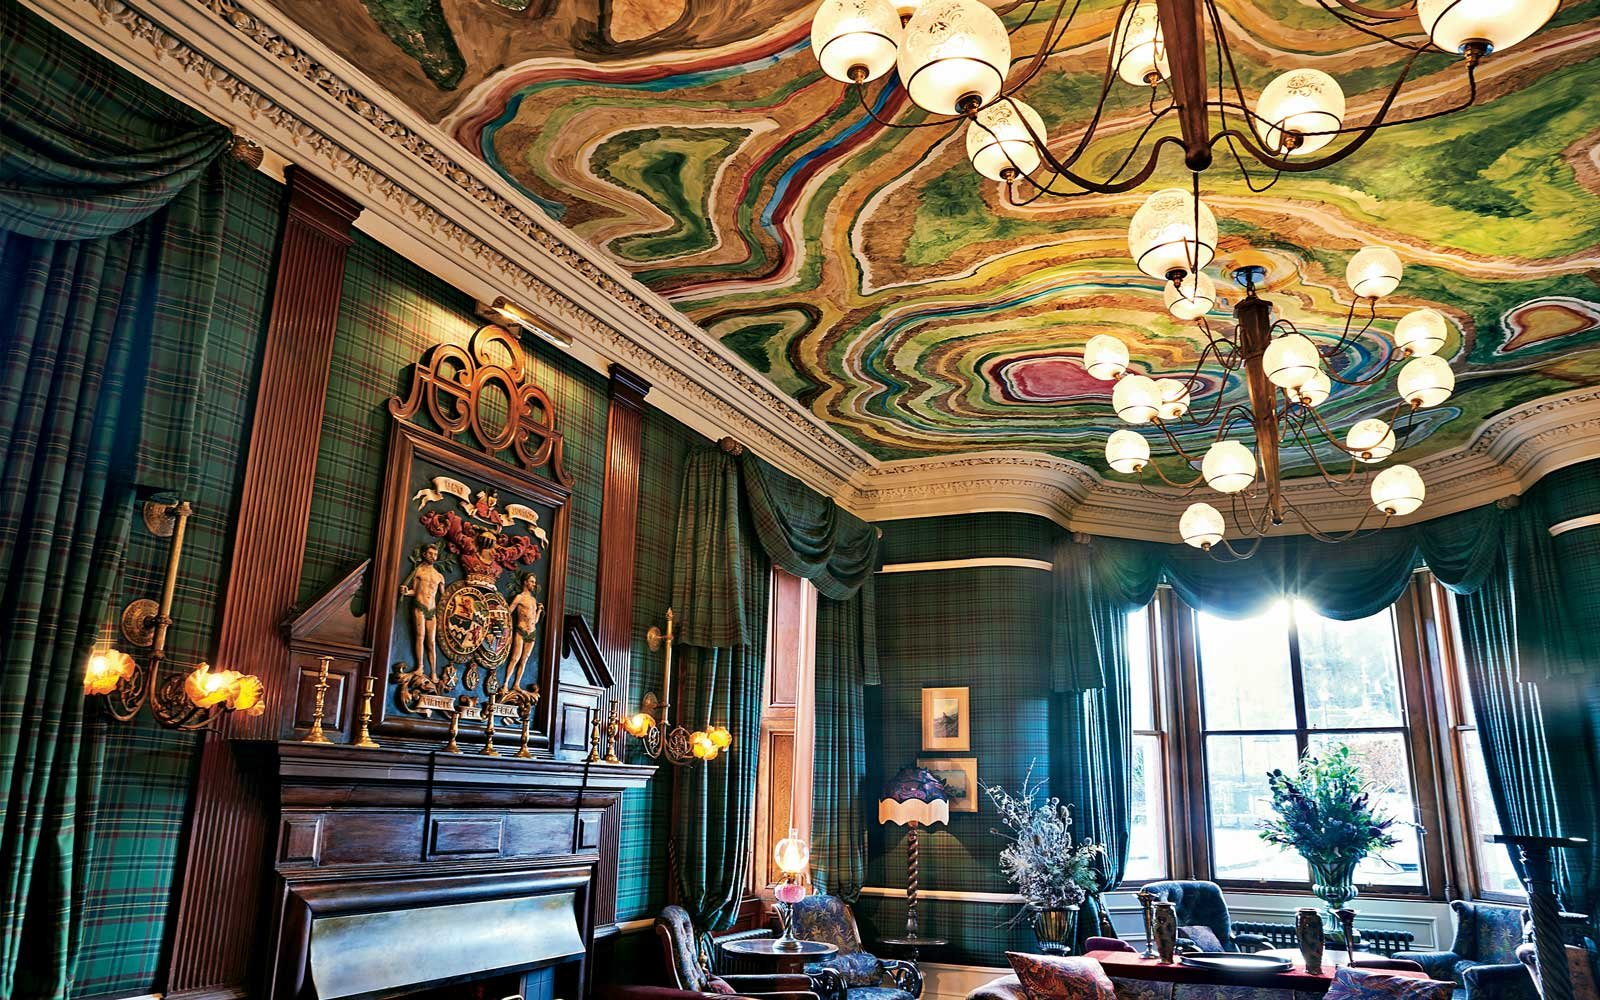 Artwork on the ceiling in the Fife Arms hotel in Scotland